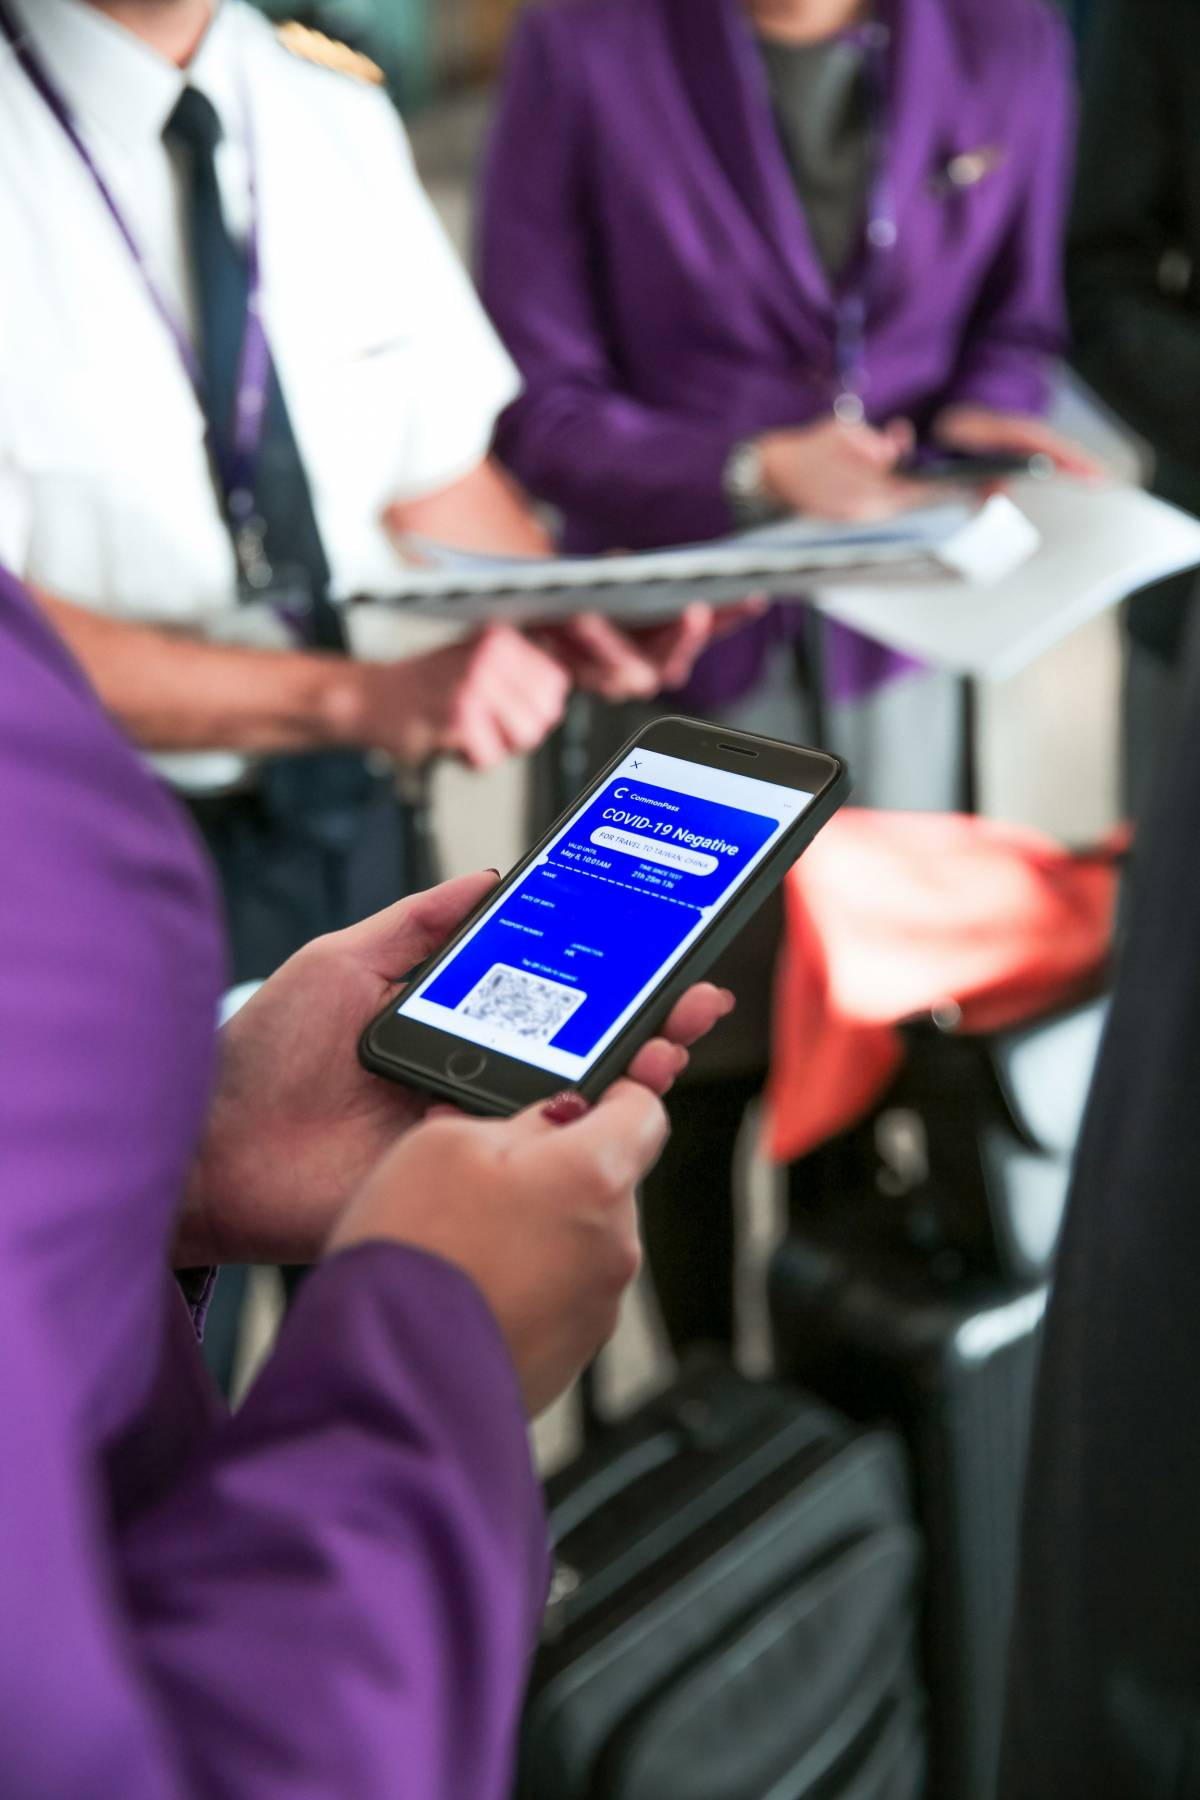 HK Express Completes First Digital Health Passport Trial, Paving Way for Seamless, Secure Return to International Travel